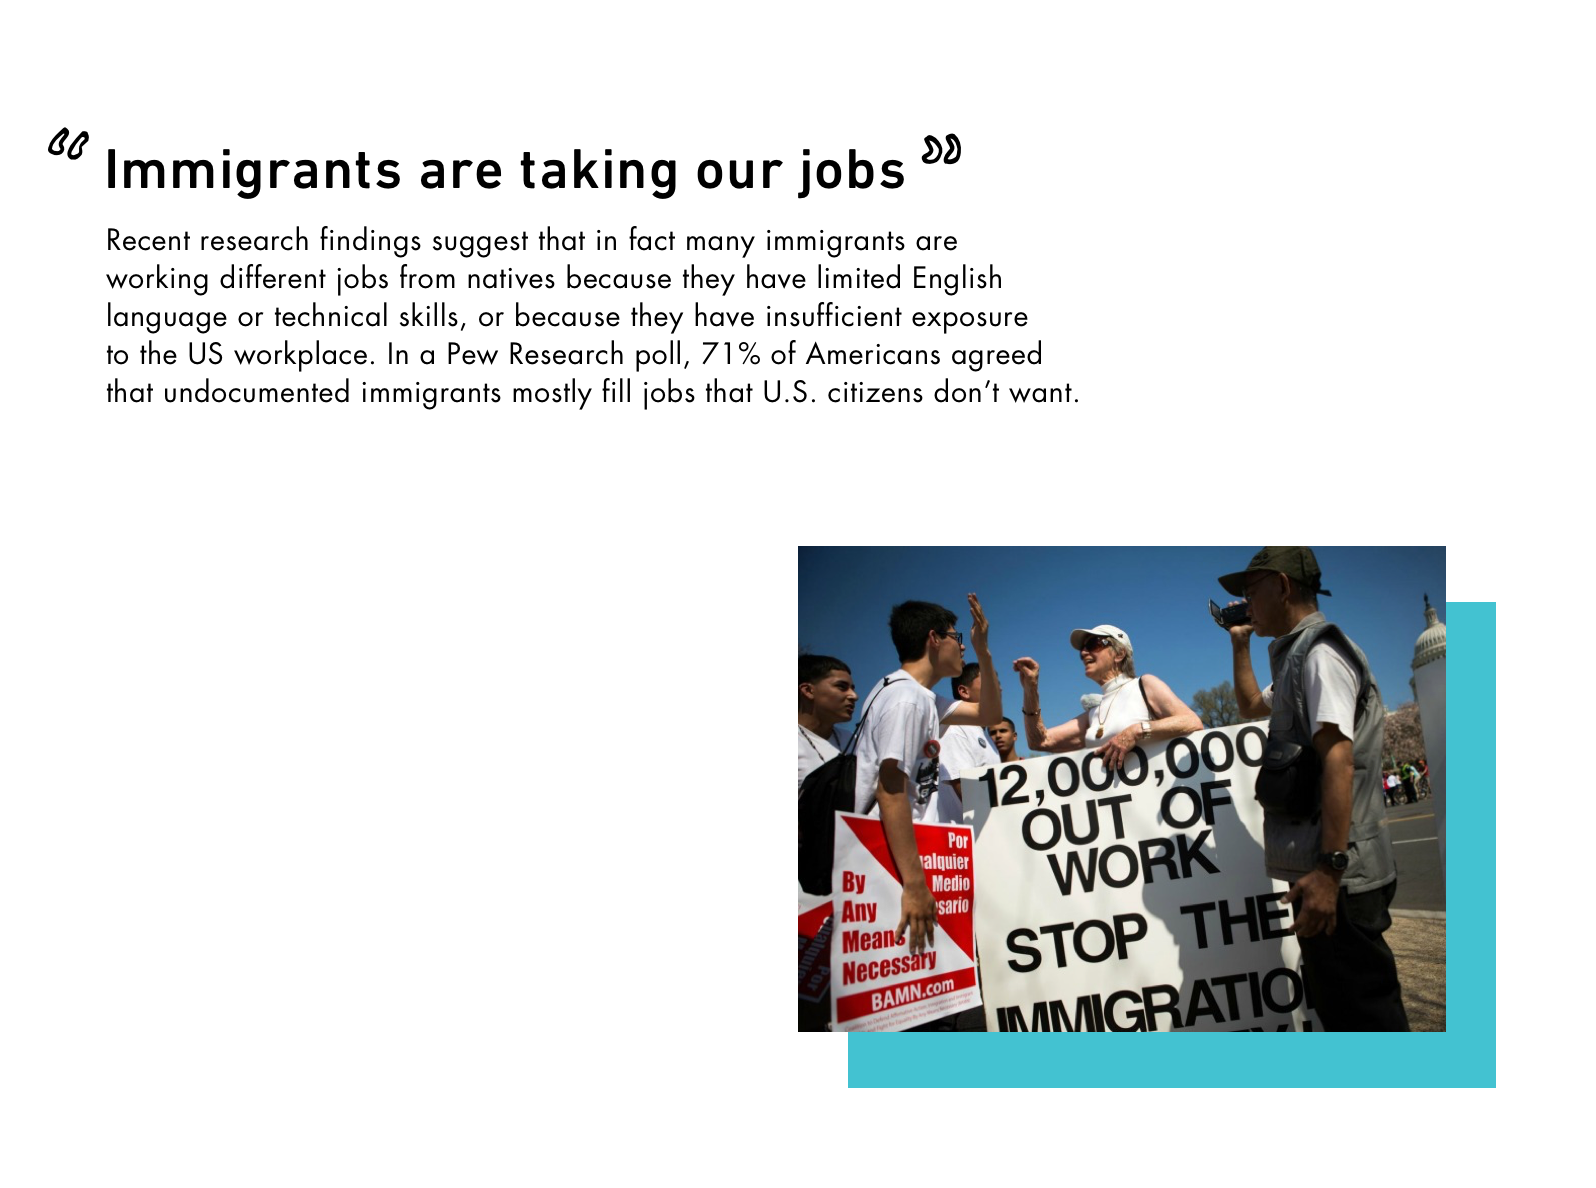 immigration-pg6.png